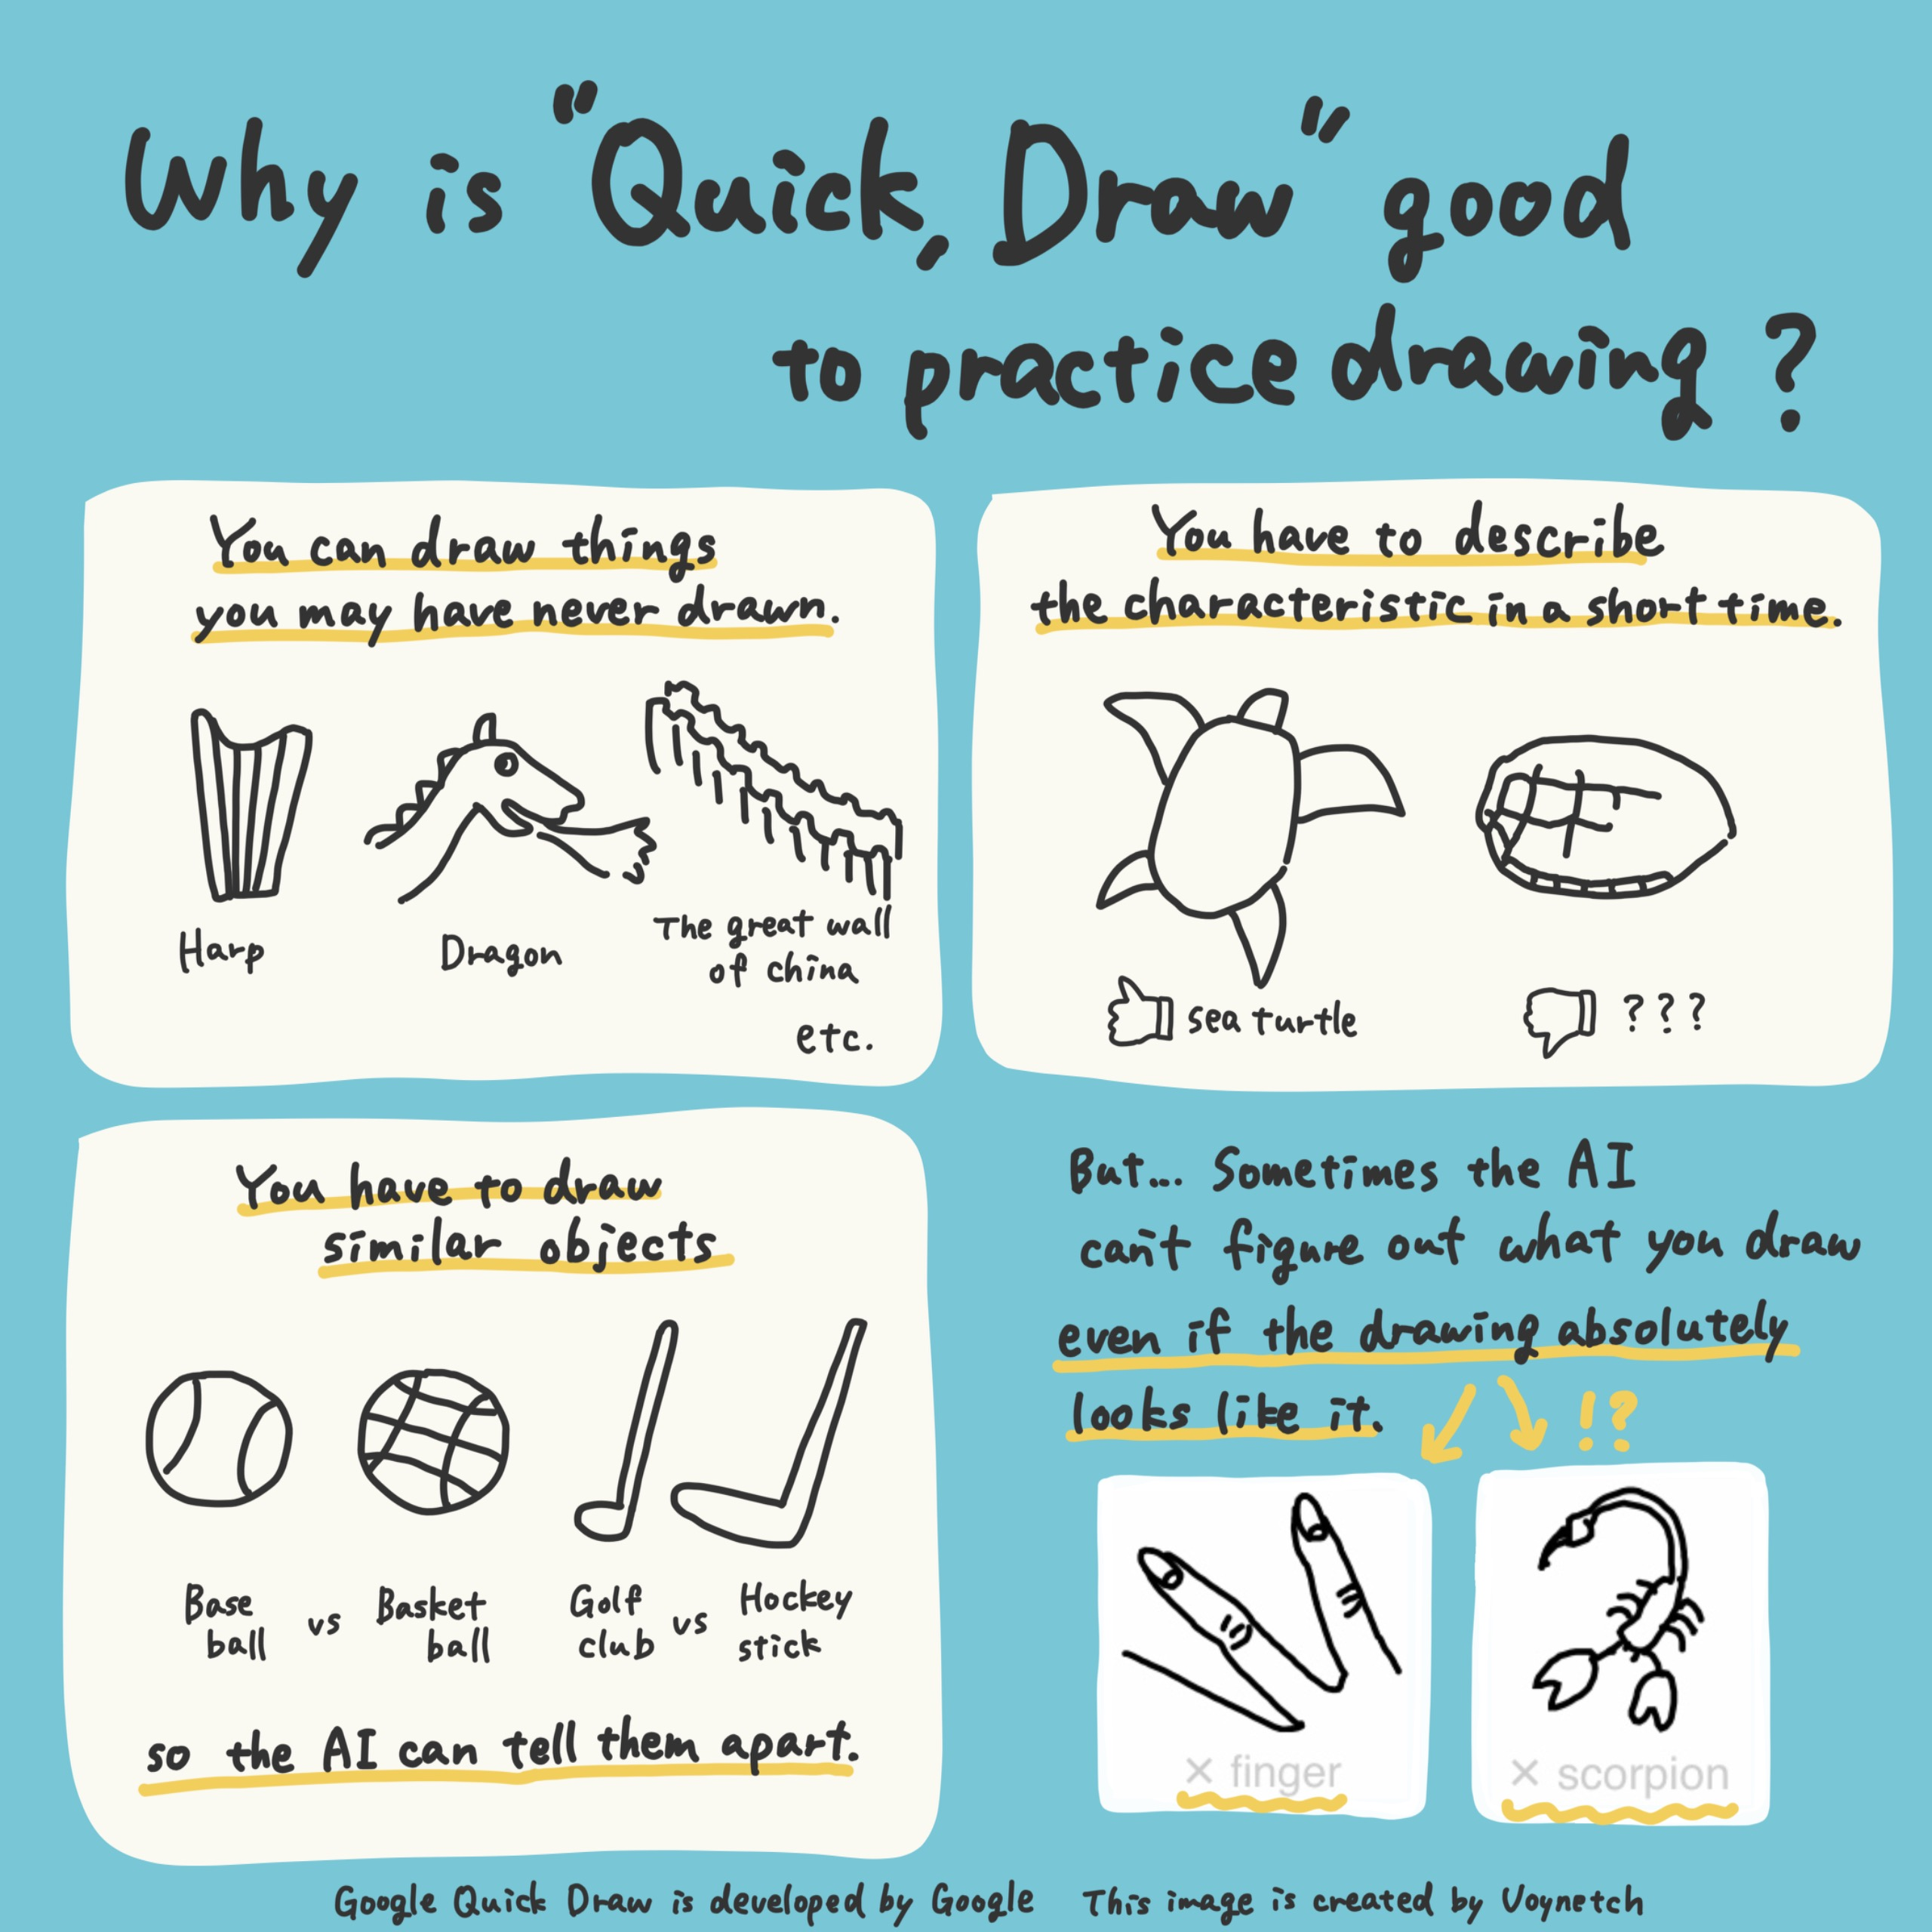 """Google """"Quick, Draw!"""" is a good tool to practice drawing Image (2/2)"""